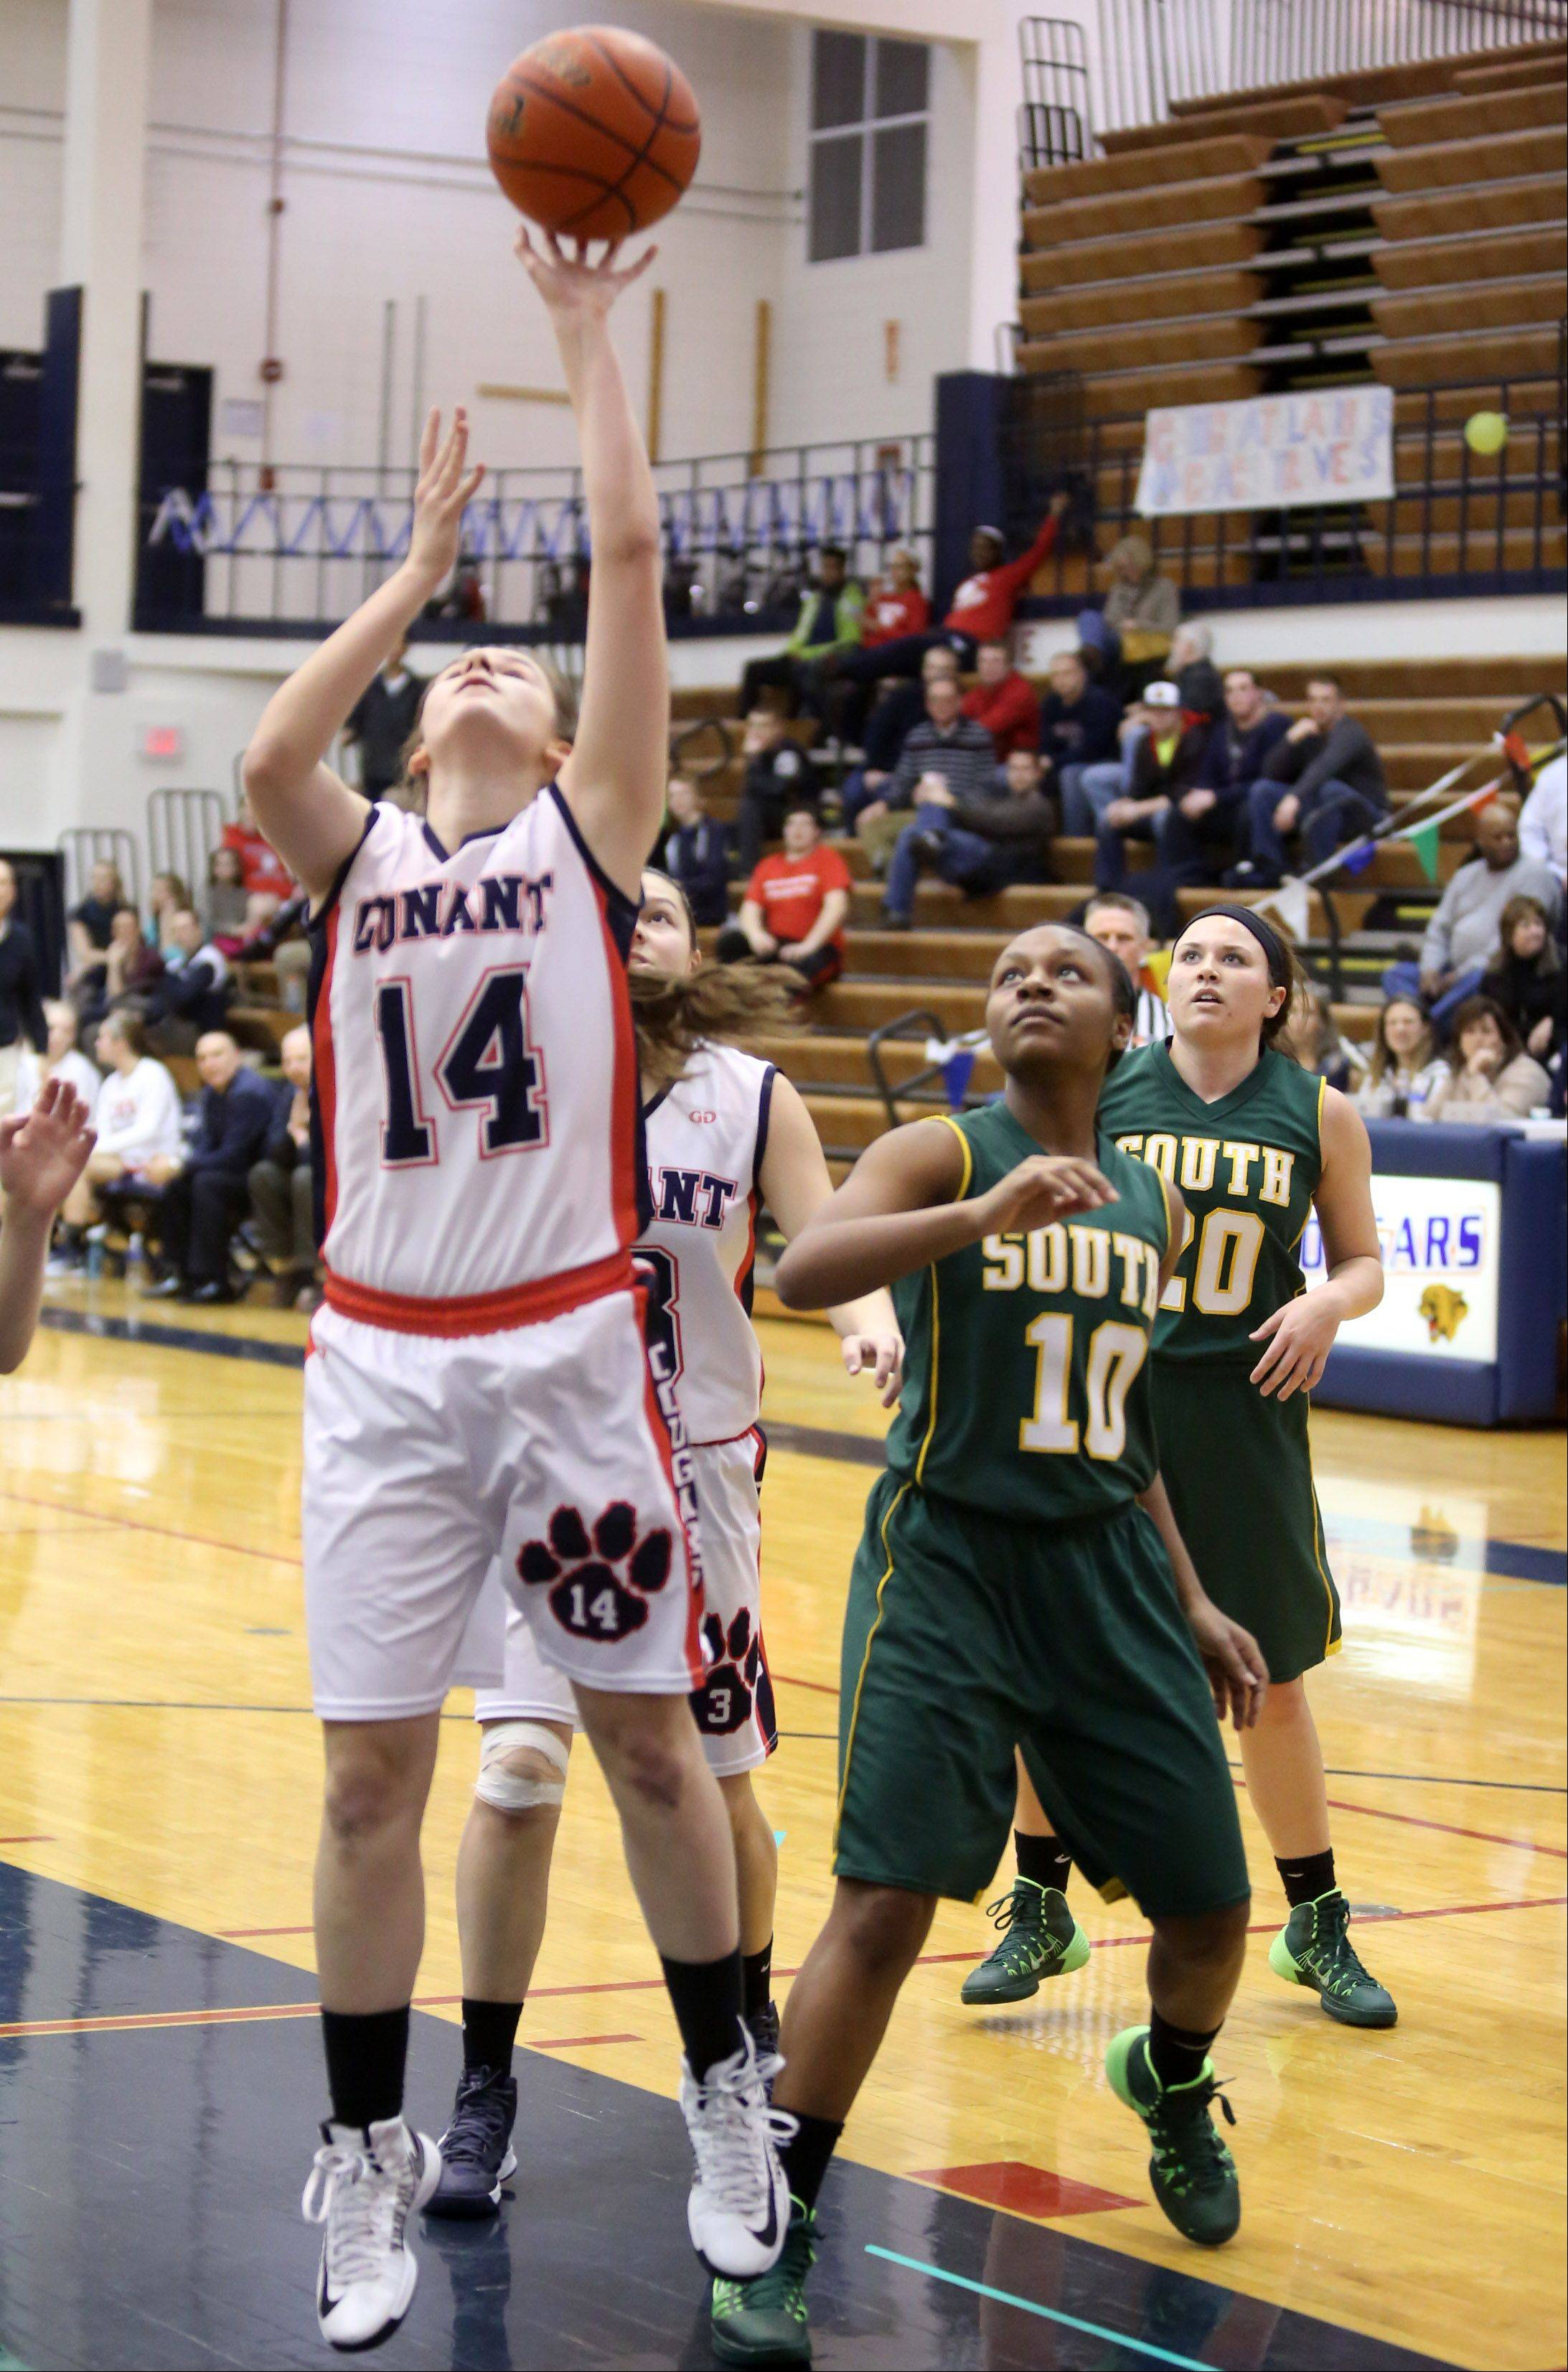 Conant's Sarah Mazurek shoots against Crystal Lake South at Conant on Saturday.